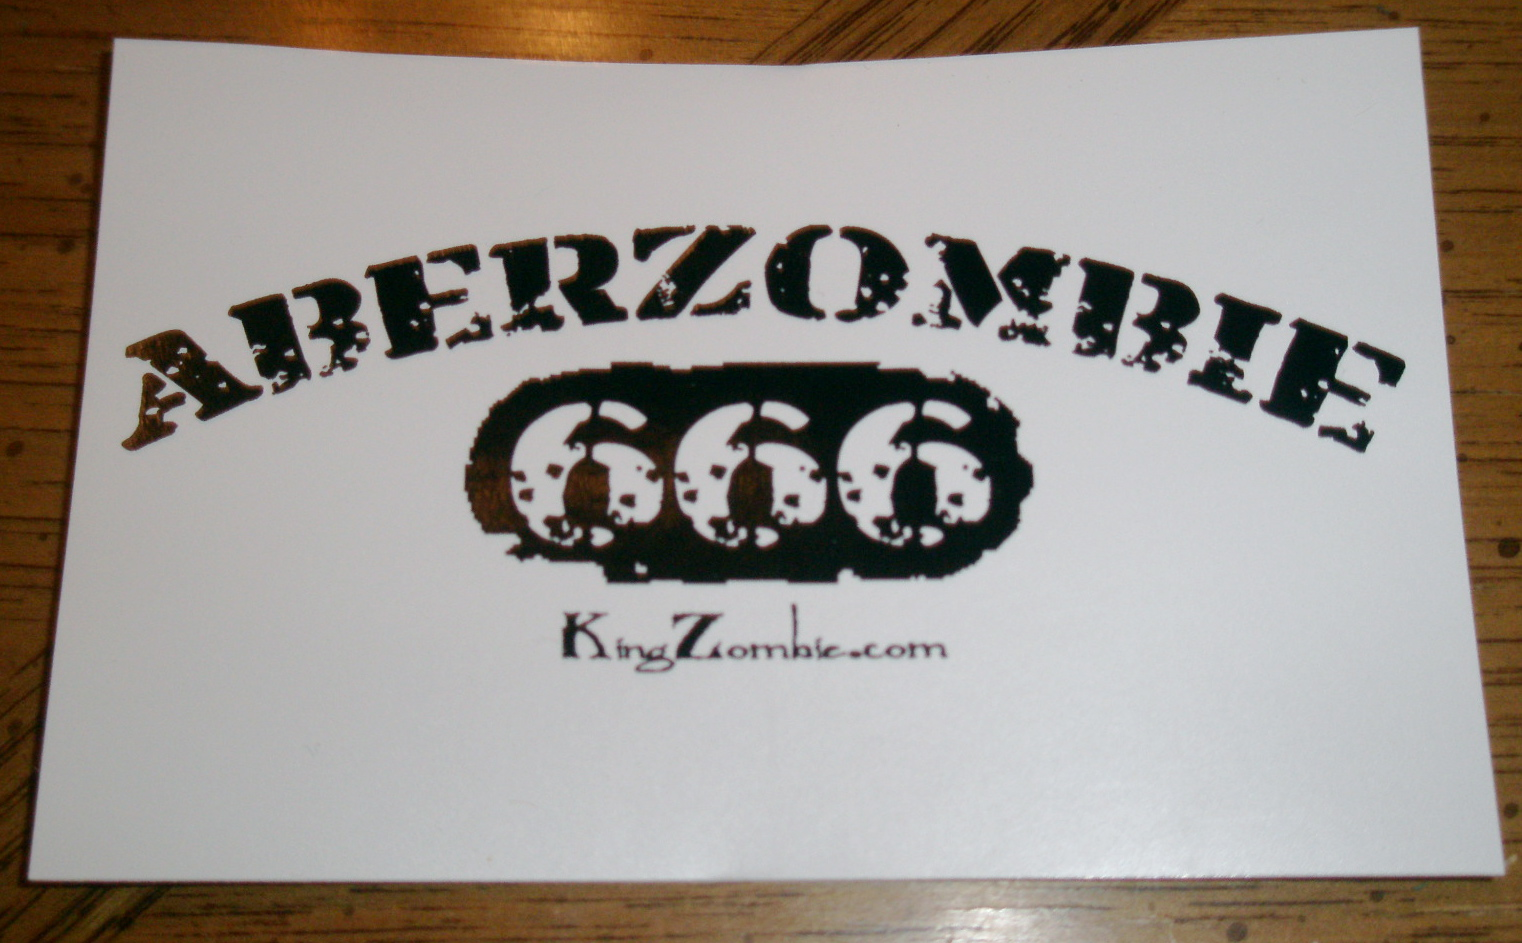 "Aberzombie 666 4.25"" x 2.75"" Stickers"